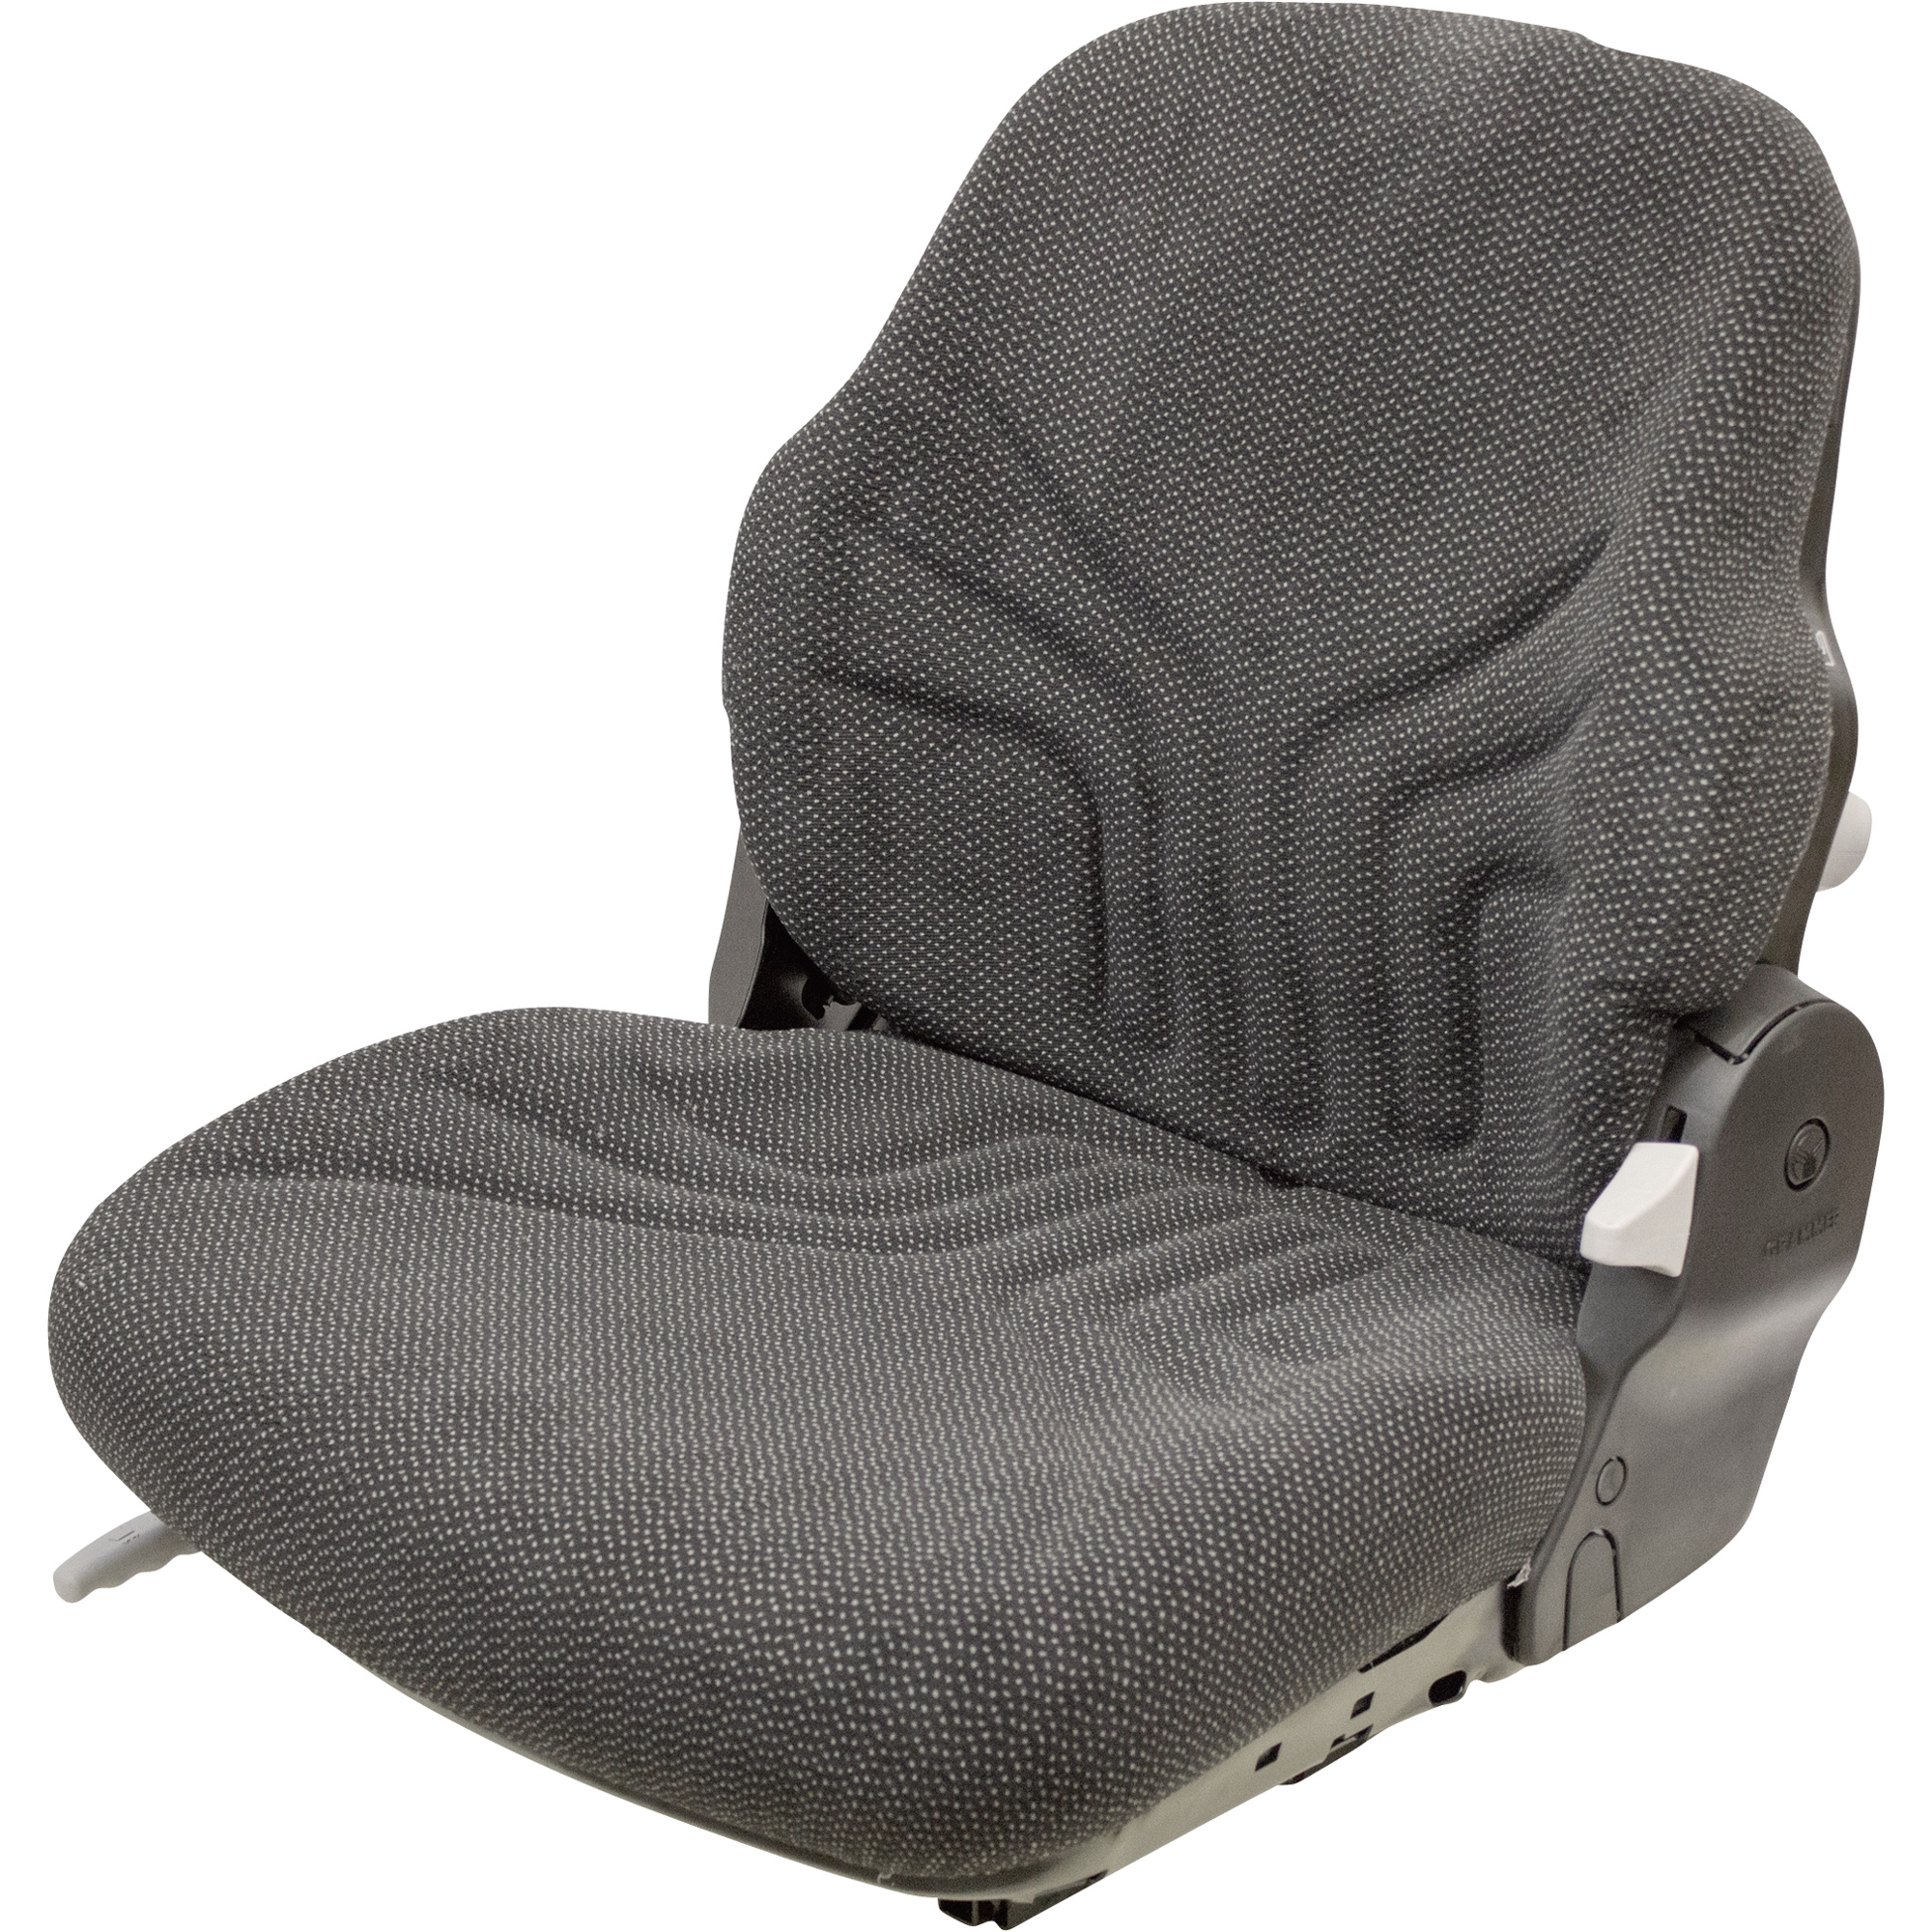 K And M Tractor Seats : K m uni pro fabric tractor seat — black model